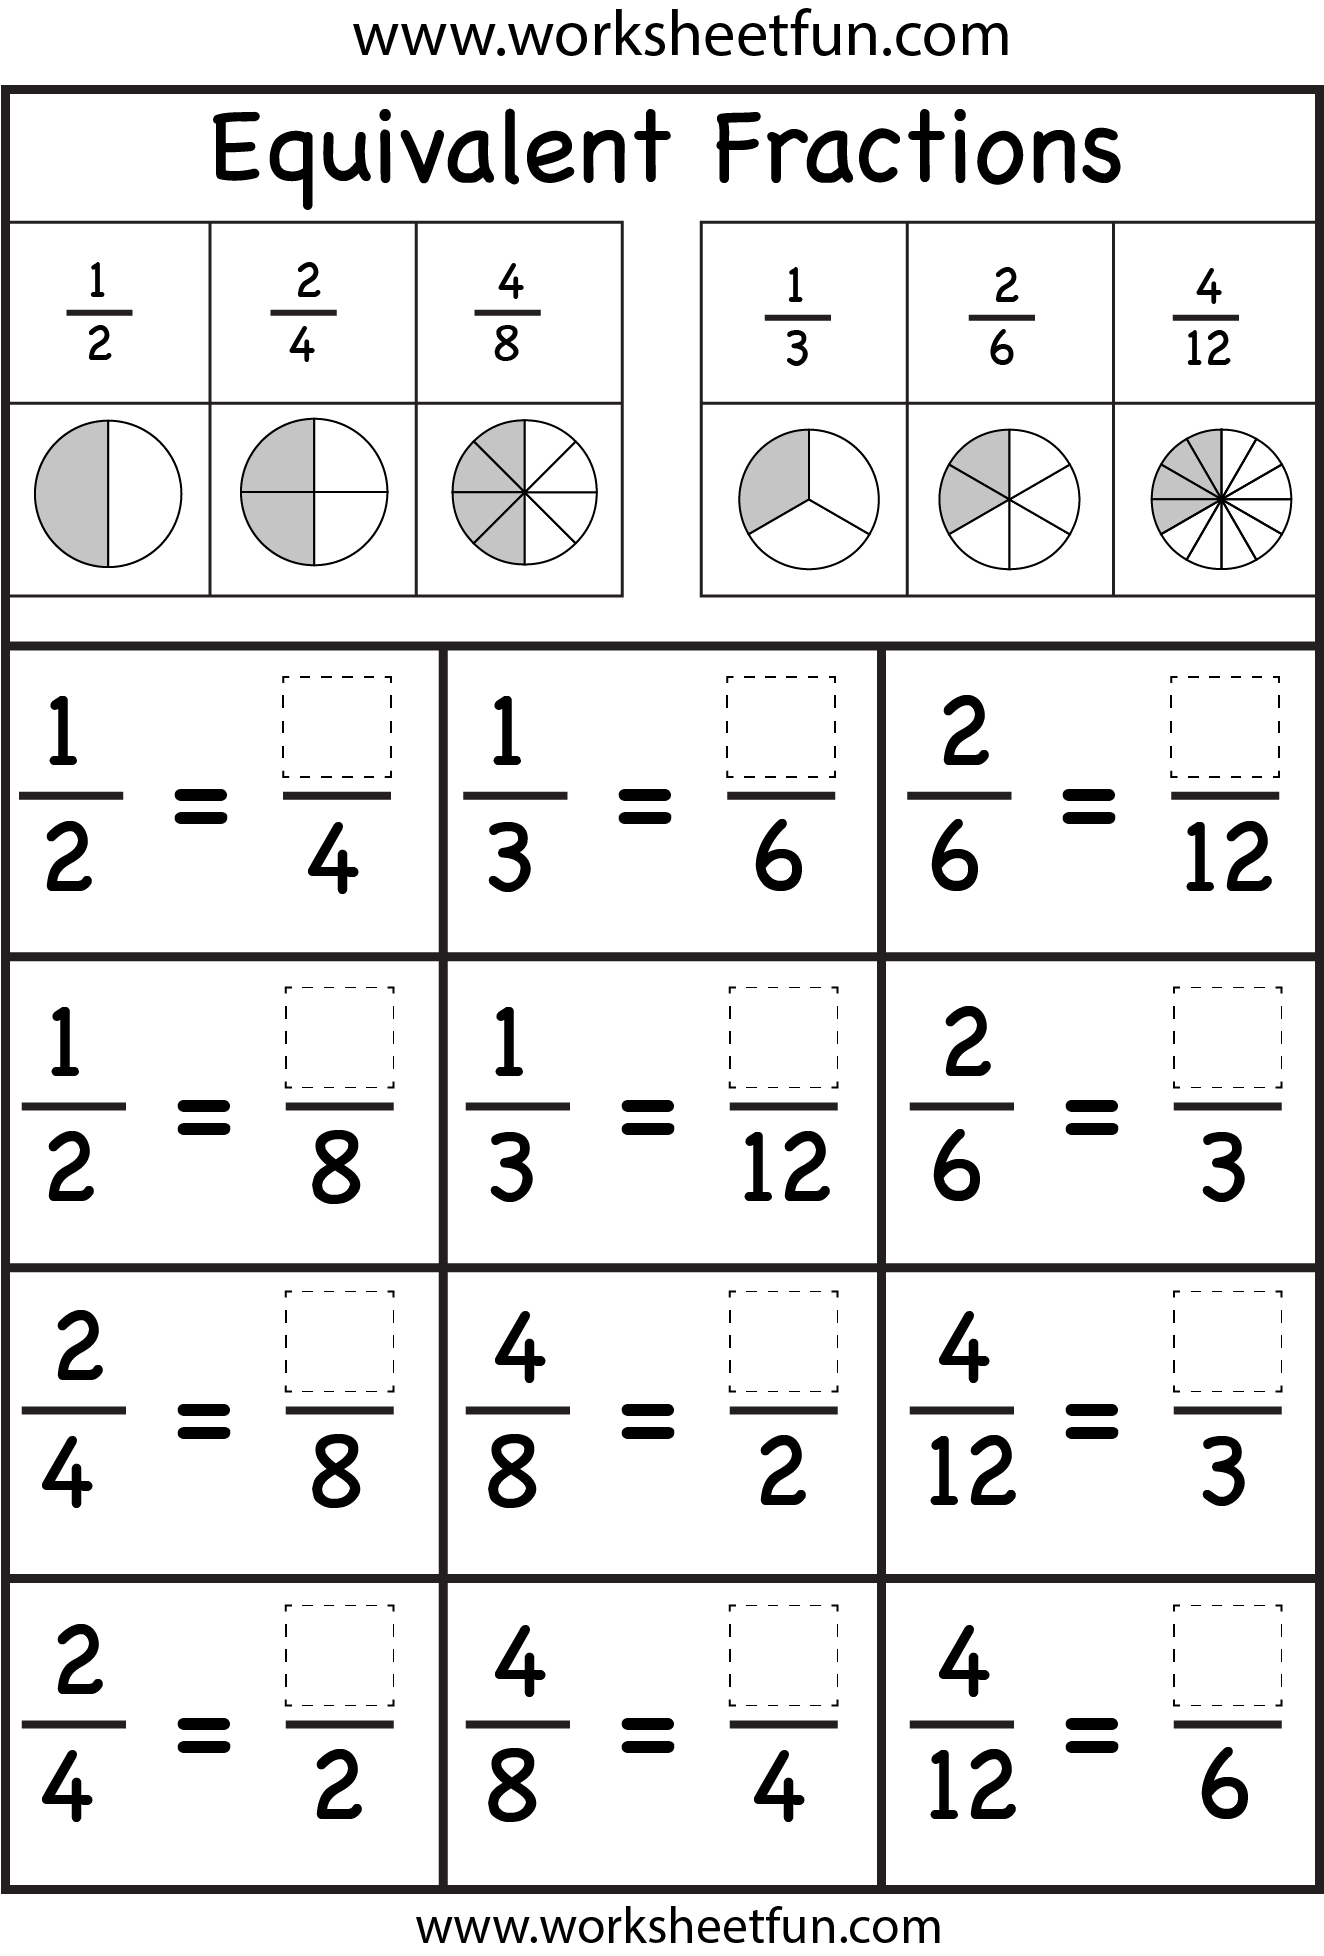 Printables Equivalent Fractions Free Worksheets 1000 images about fraction worksheets on pinterest models circles and math facts